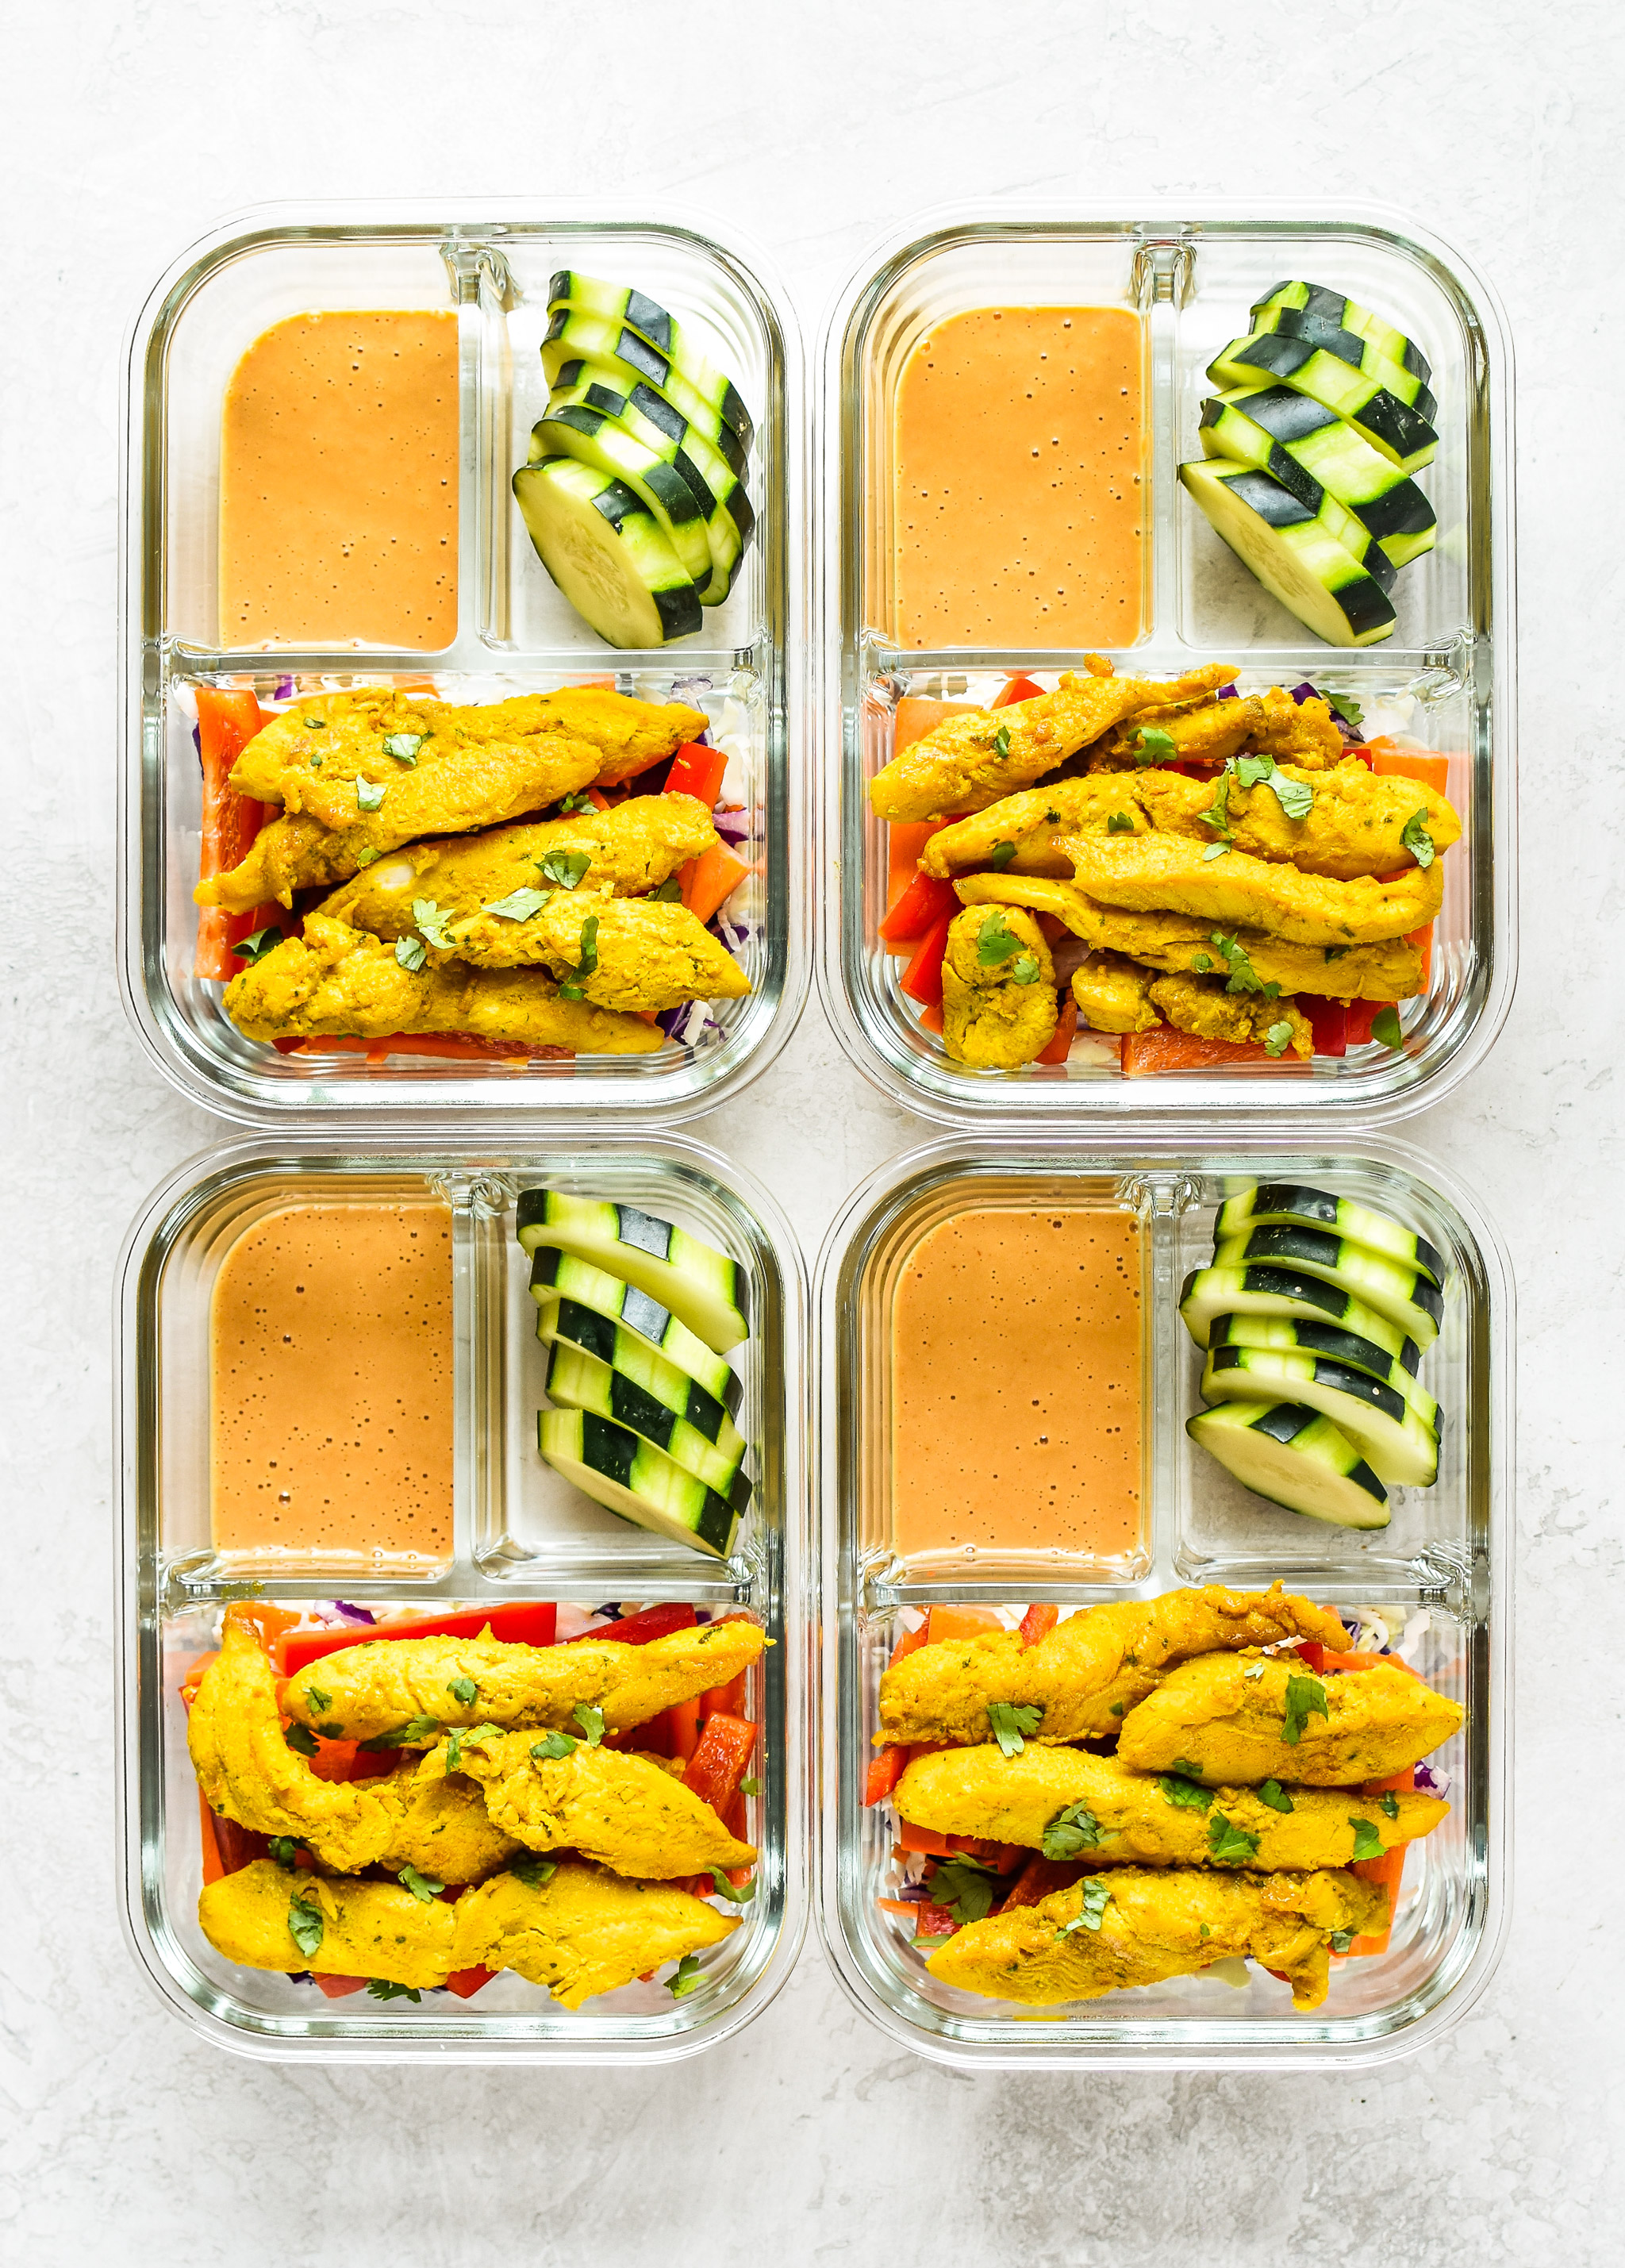 Meal Prep Satay Inspired Thai Chicken Salad Bowls portioned into meal prep containers, viewed from above.